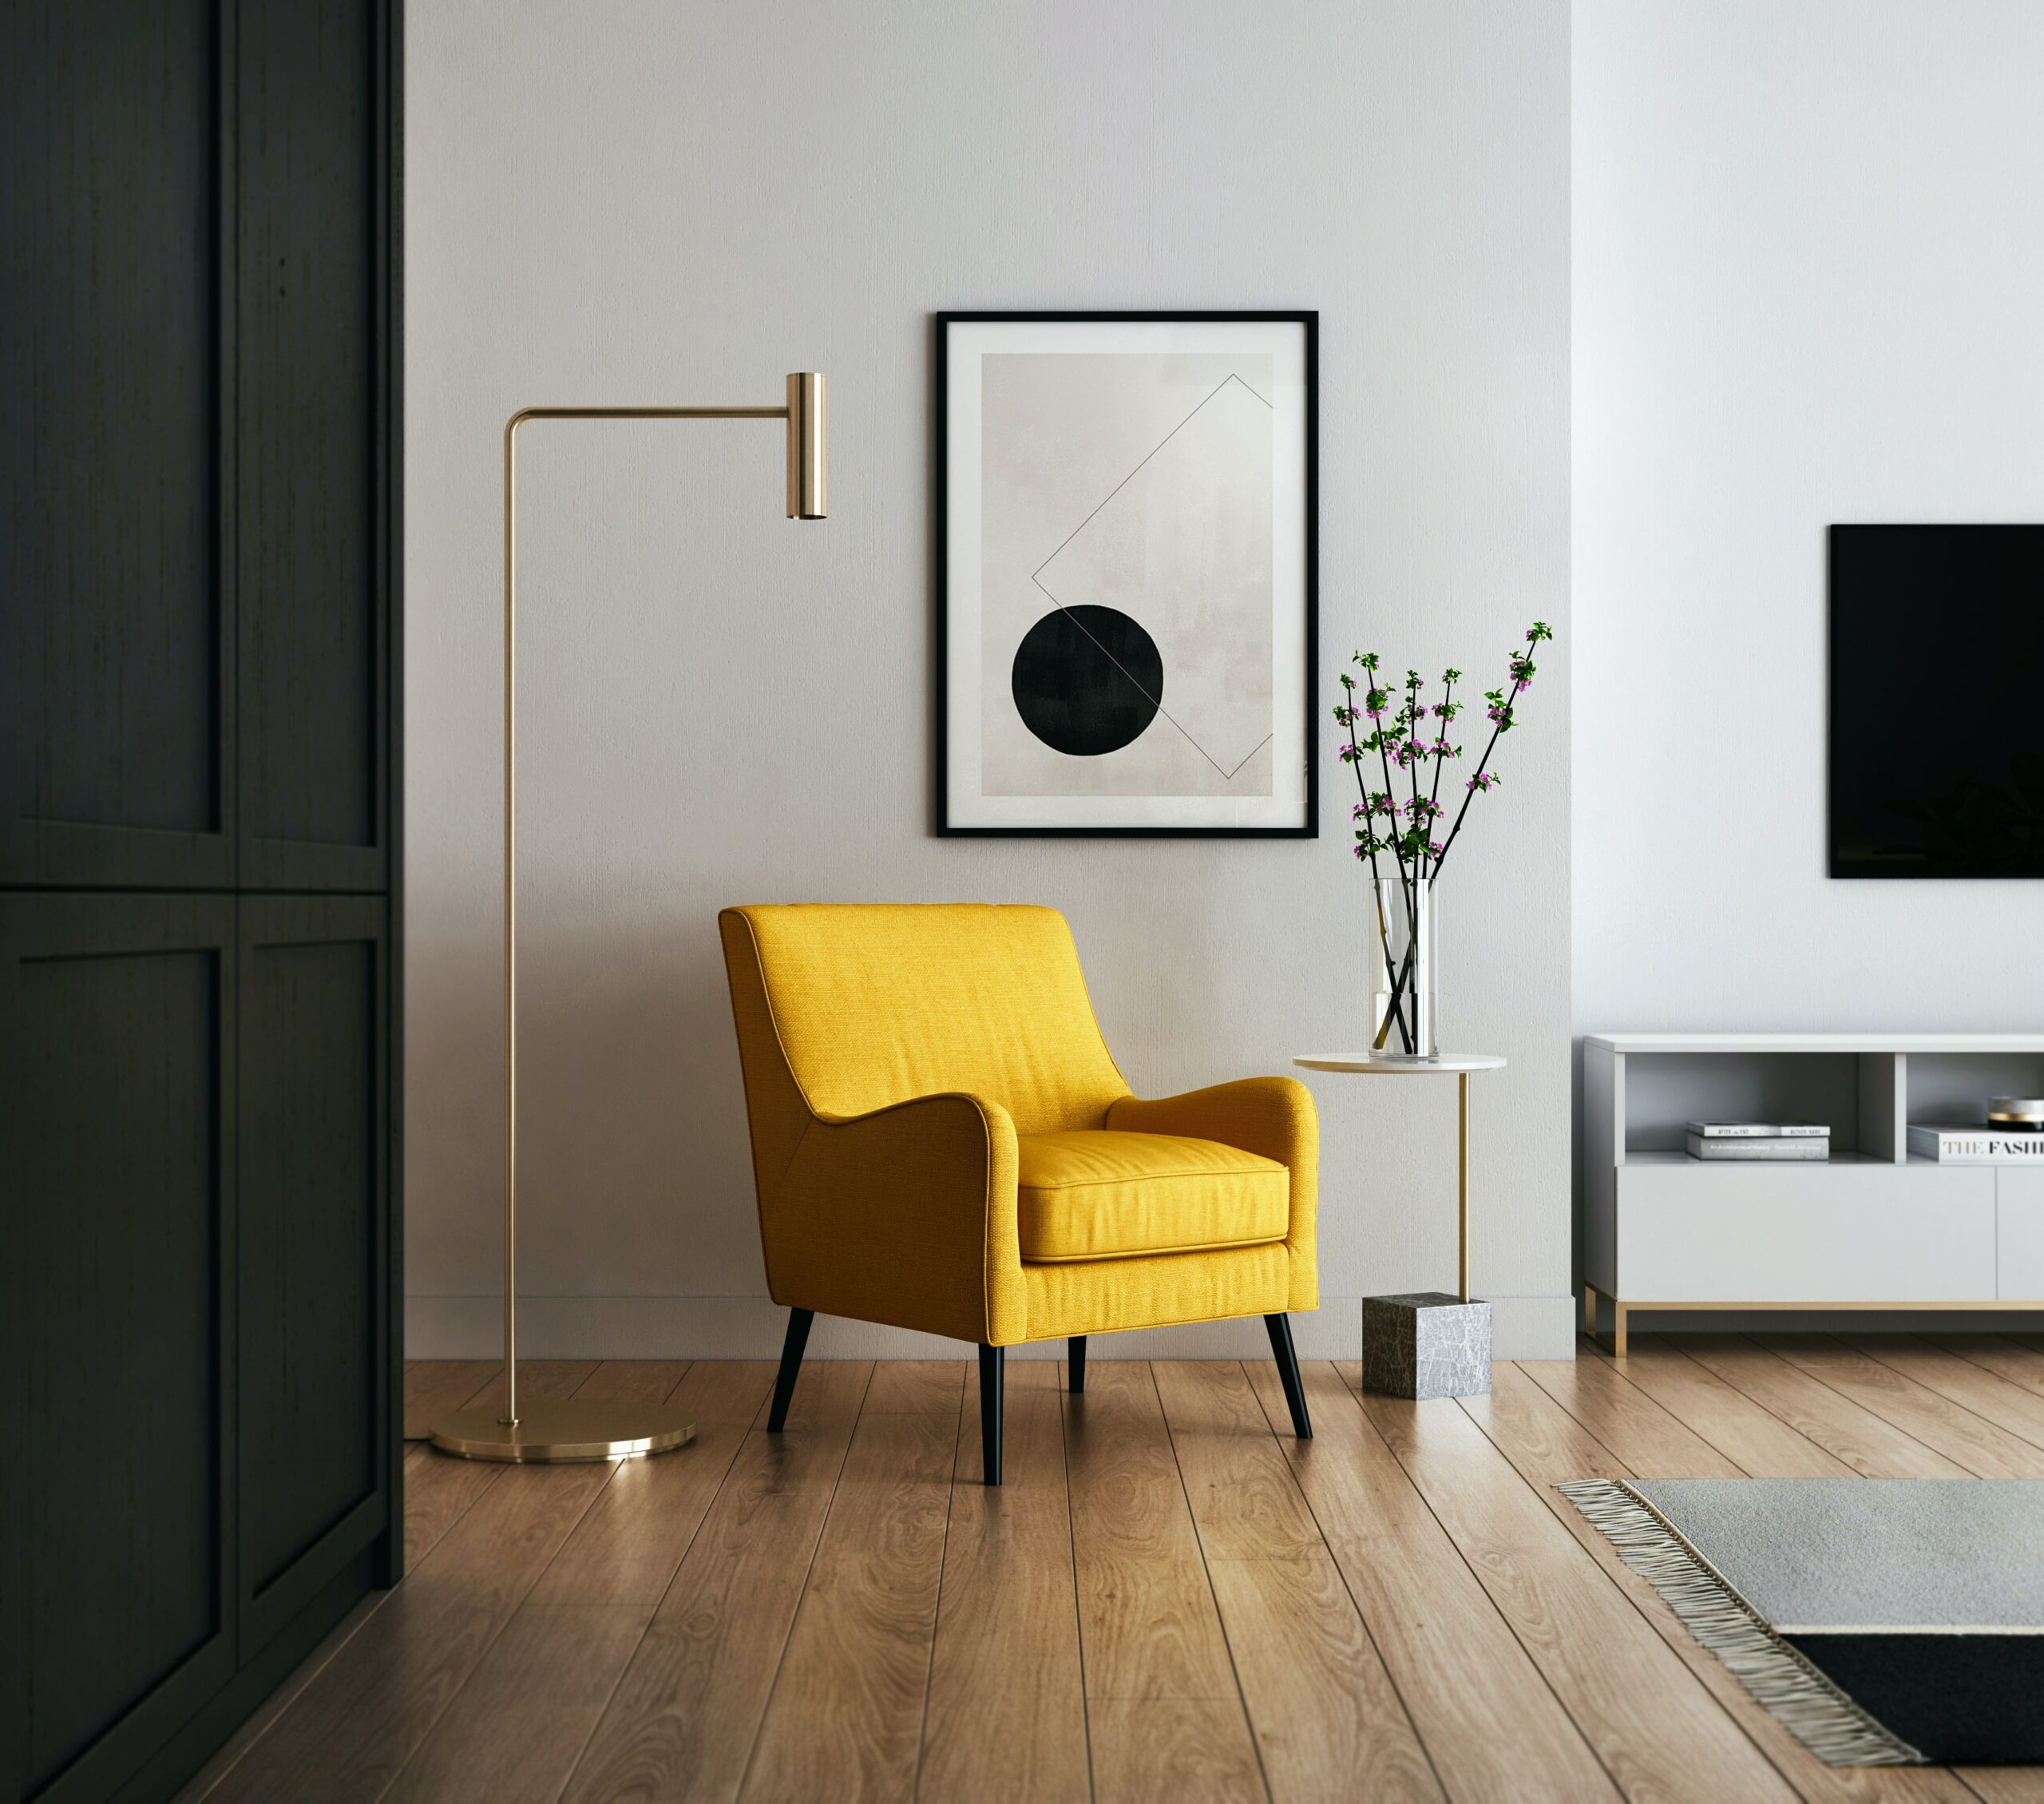 A pop of color in the form of a yellow chair in an otherwise neutral room - one of Marie's 10 Home Staging Tips